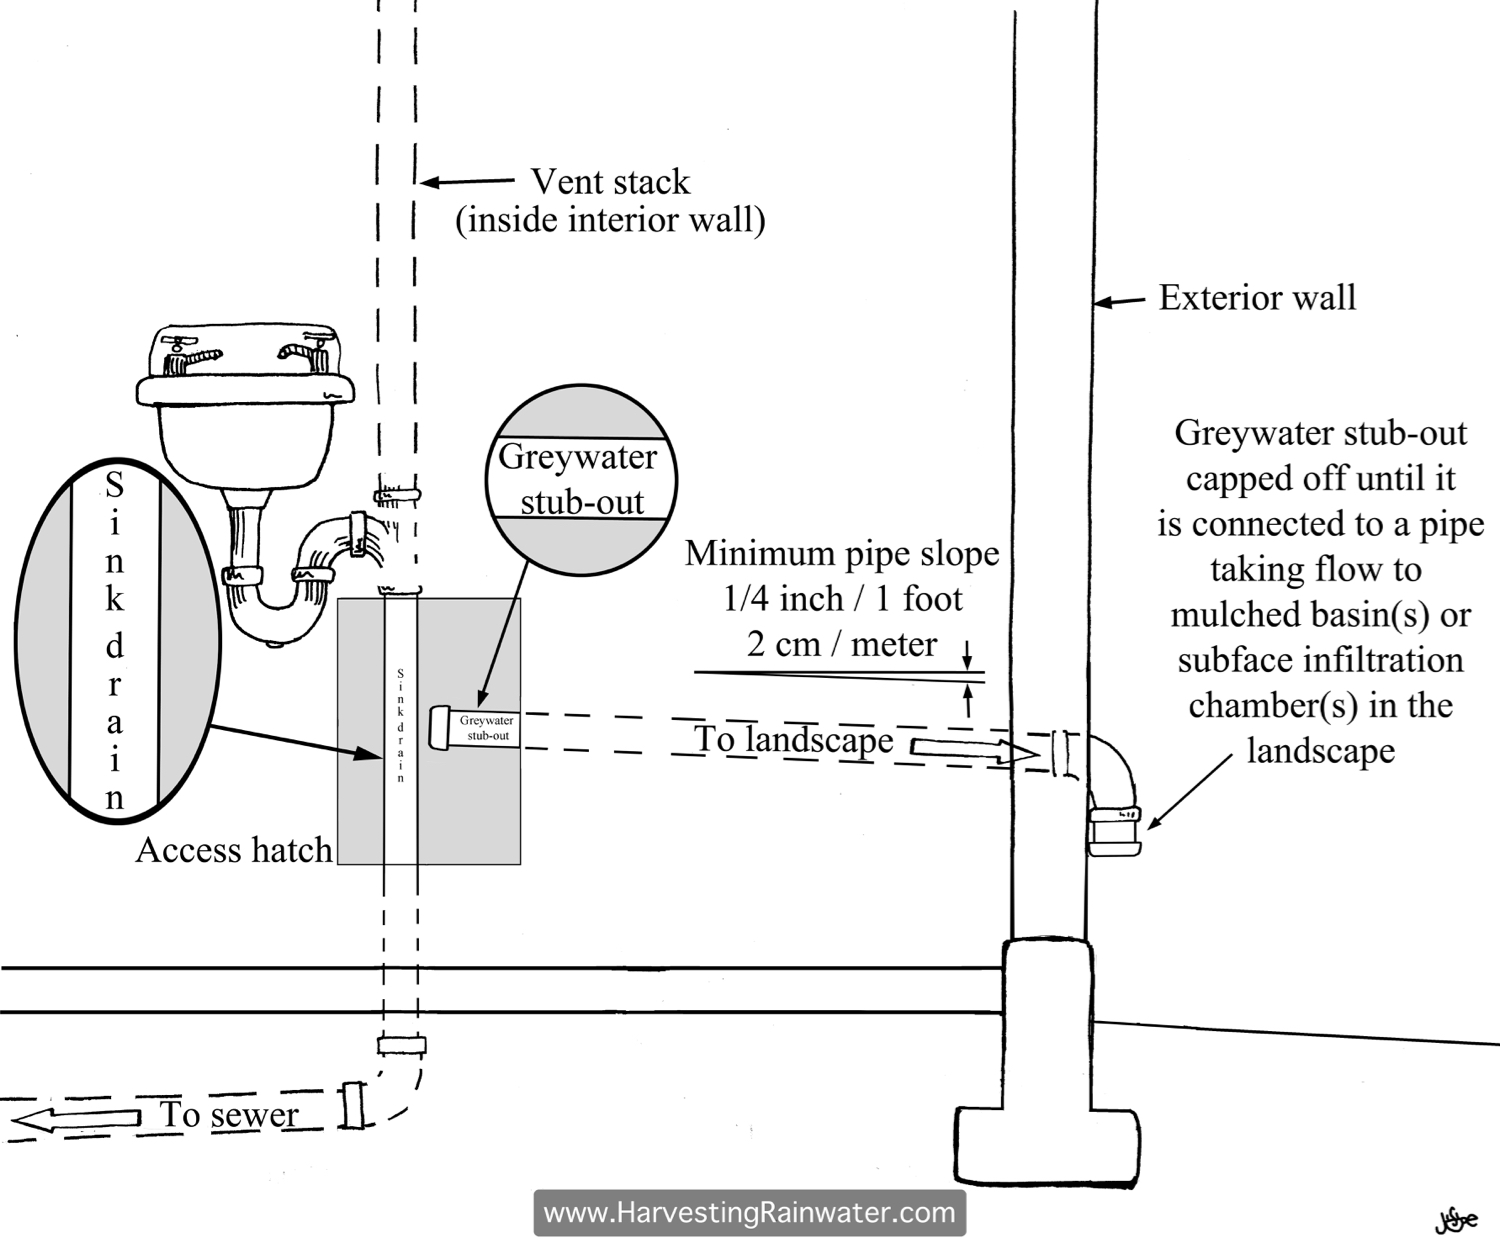 How to Make Your Own P Trap Drain Pipe from PVC Fittings